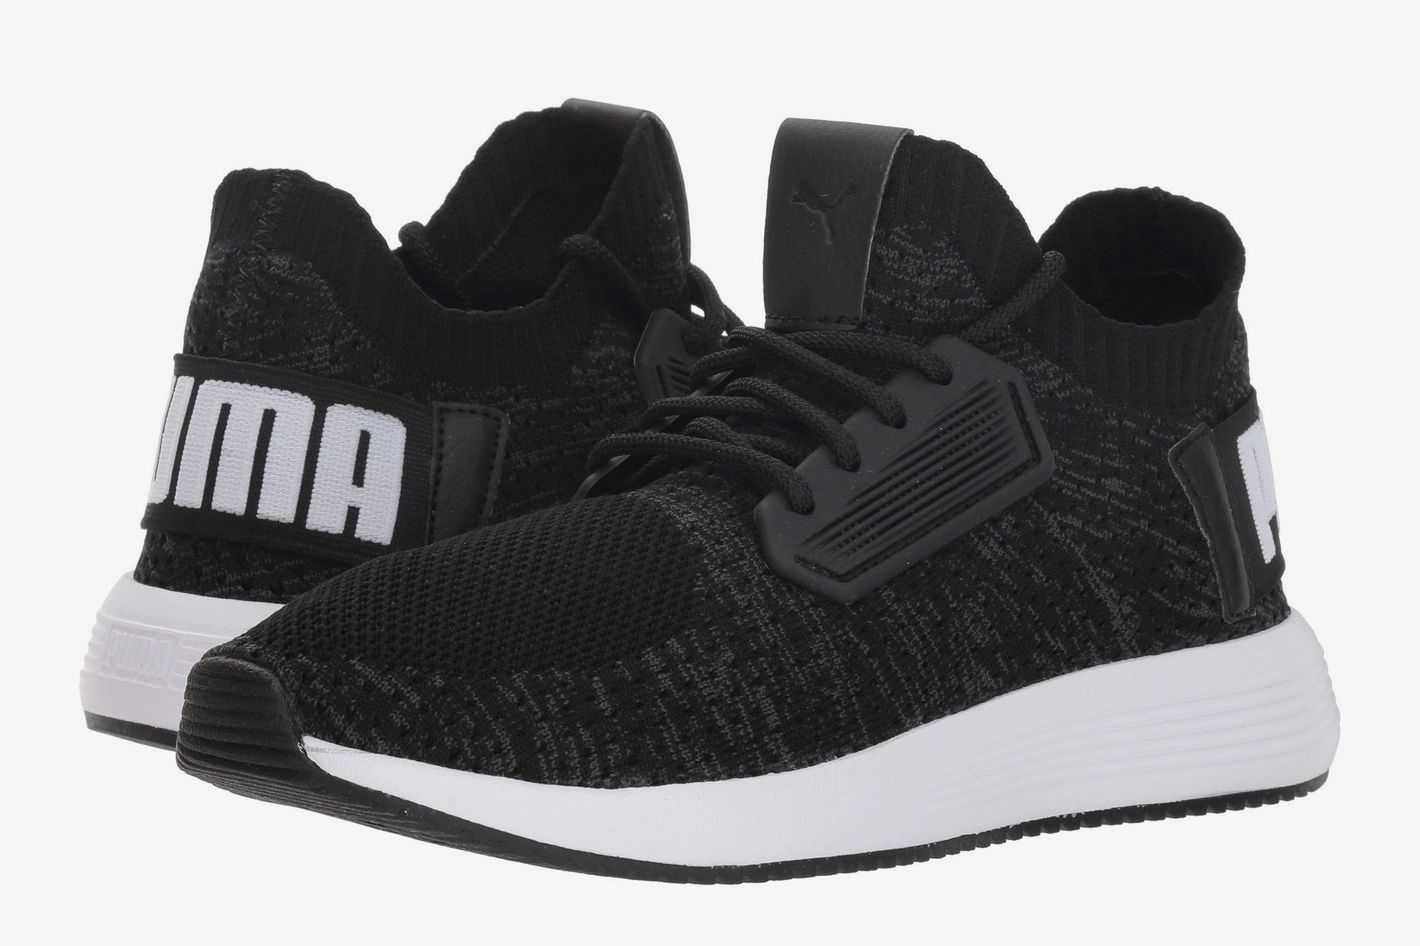 6b79ff9e5e3dcb Puma Kids Uprise Knit (Big Kid)